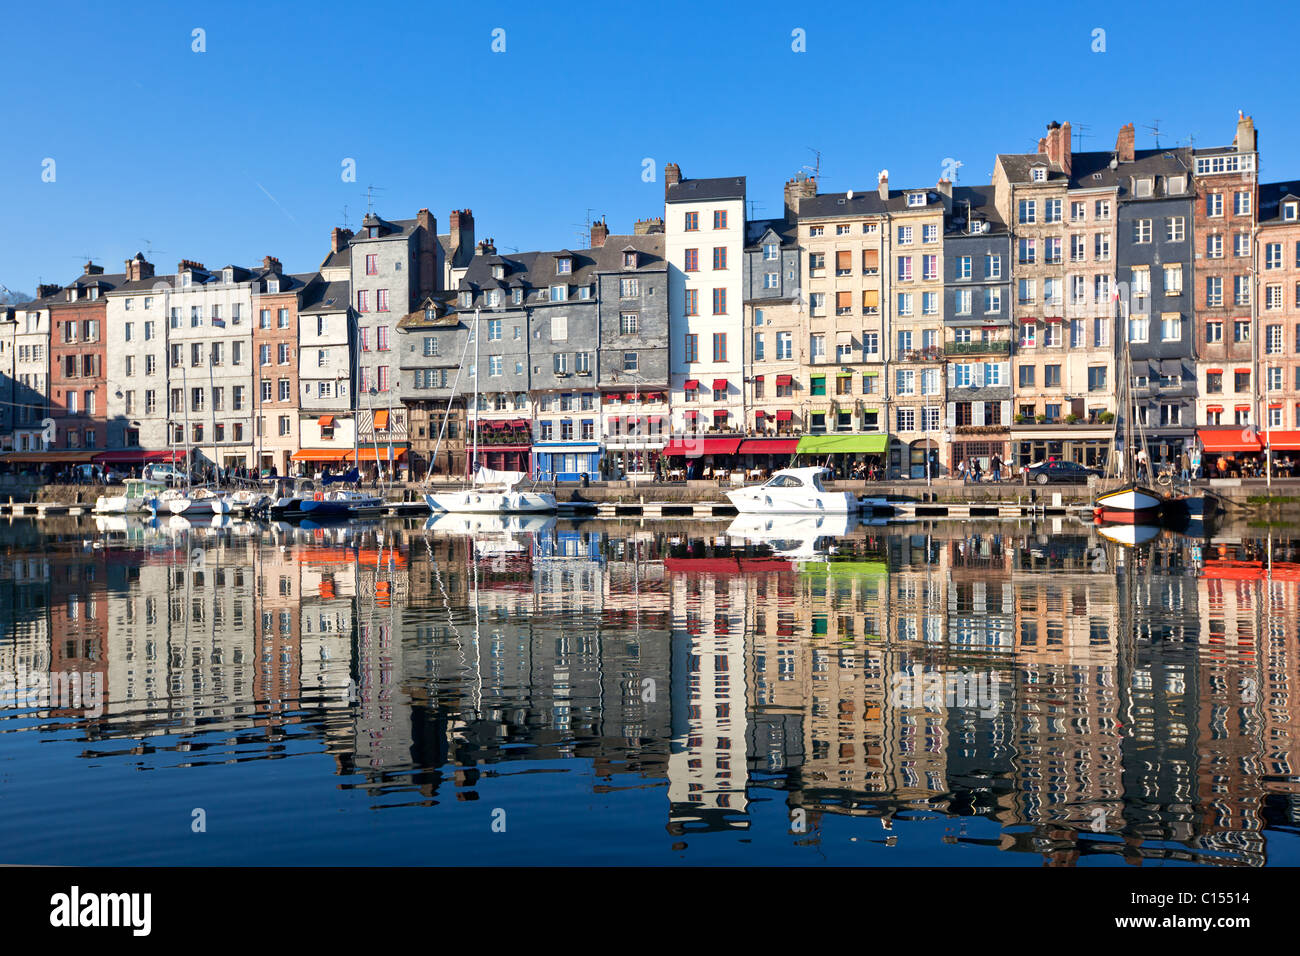 Honfleur harbour in Normandy, France. Color houses and their reflection in water. another Honfleur shots available - Stock Image